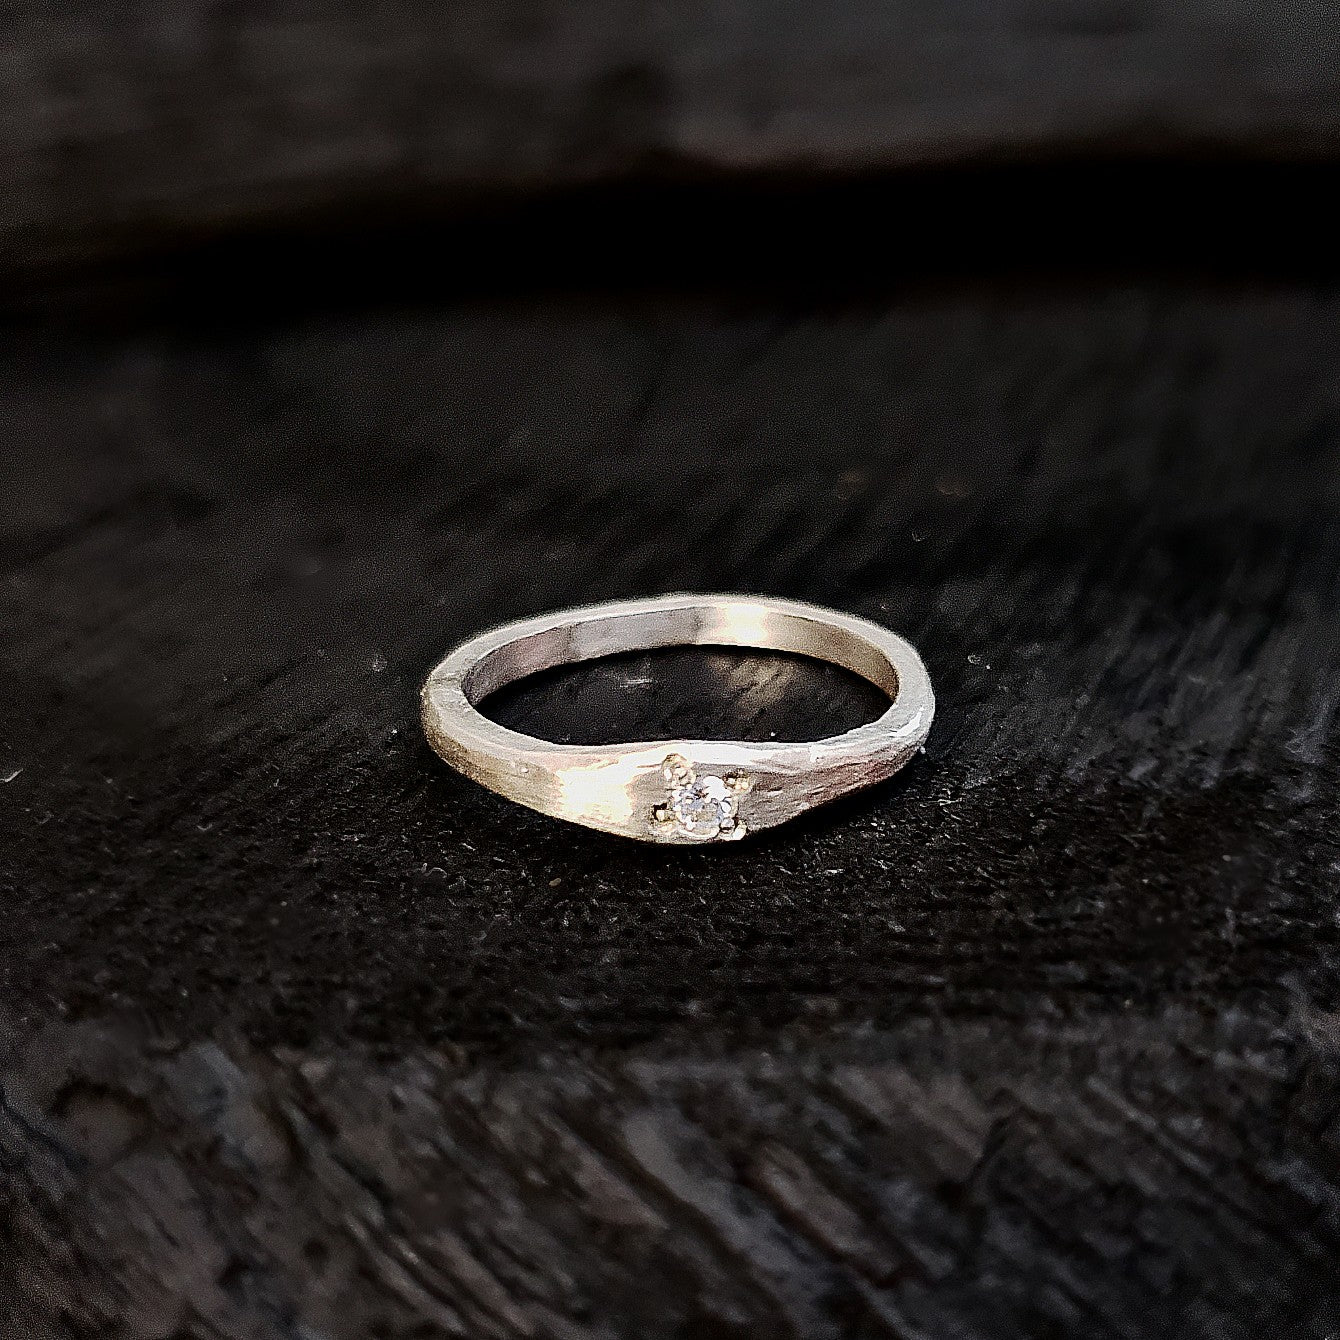 Simple CZ ring stering silver dull finish